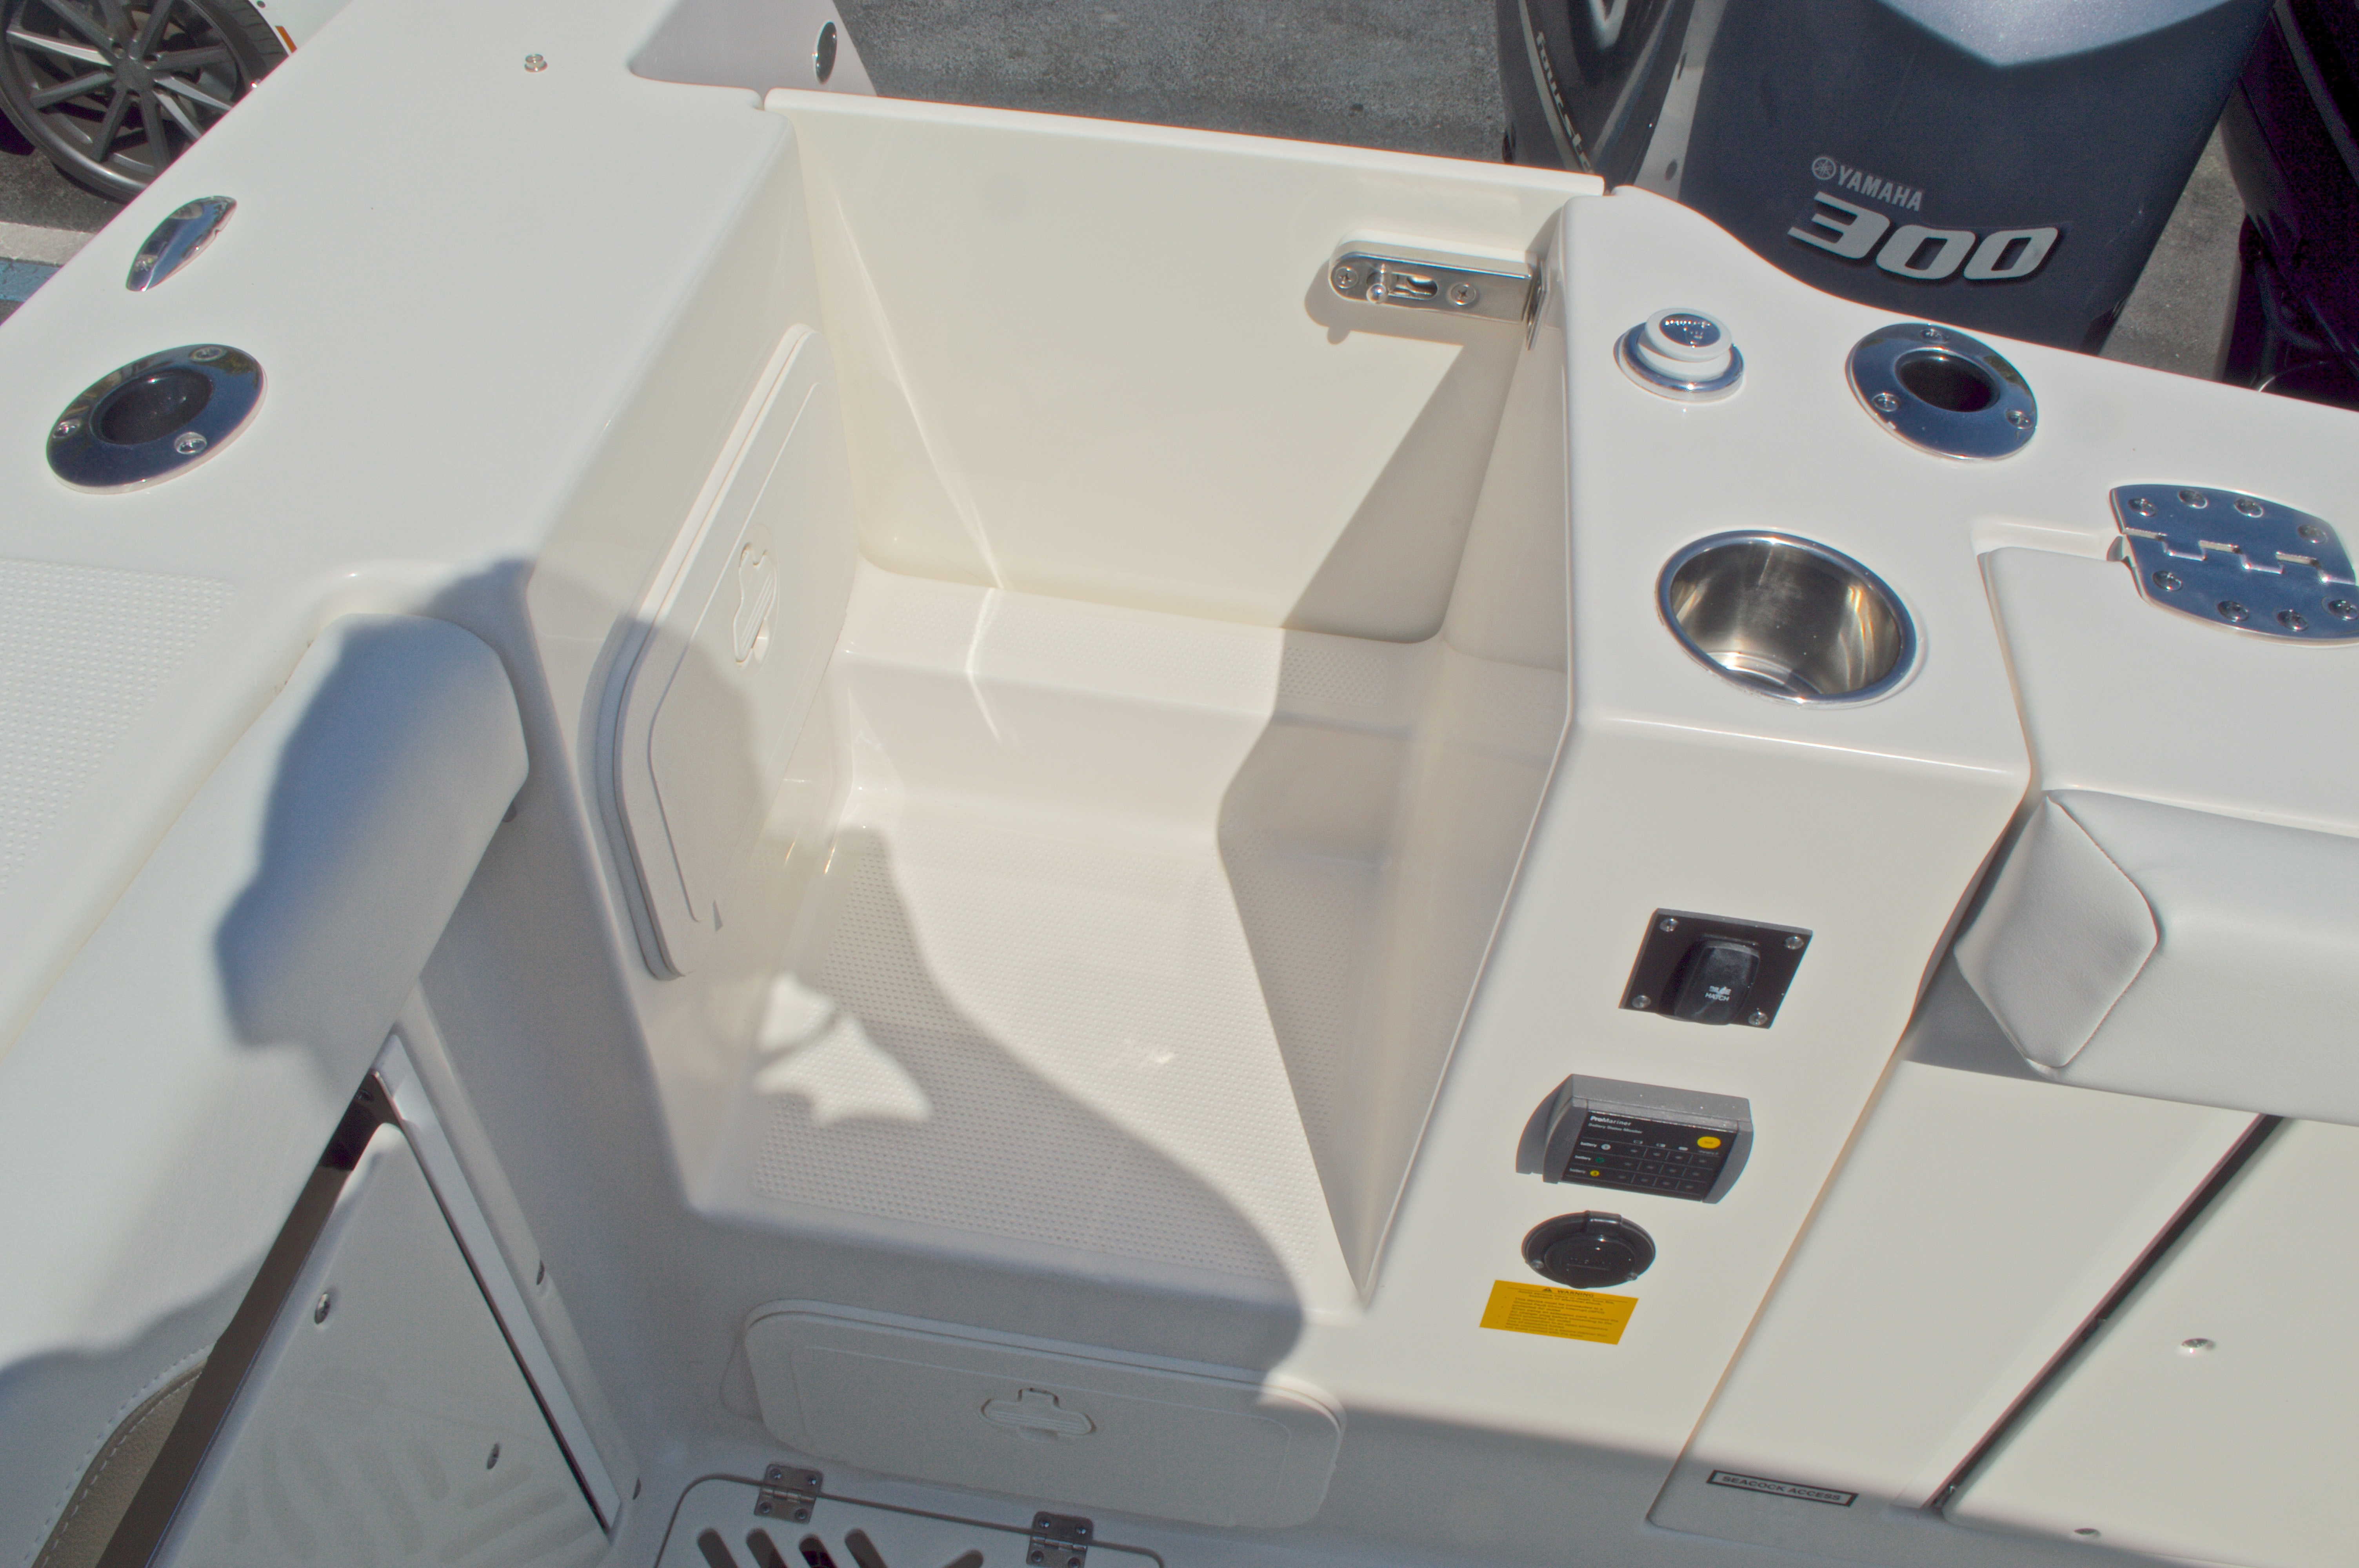 Thumbnail 15 for New 2016 Sailfish 325 Dual Console boat for sale in West Palm Beach, FL